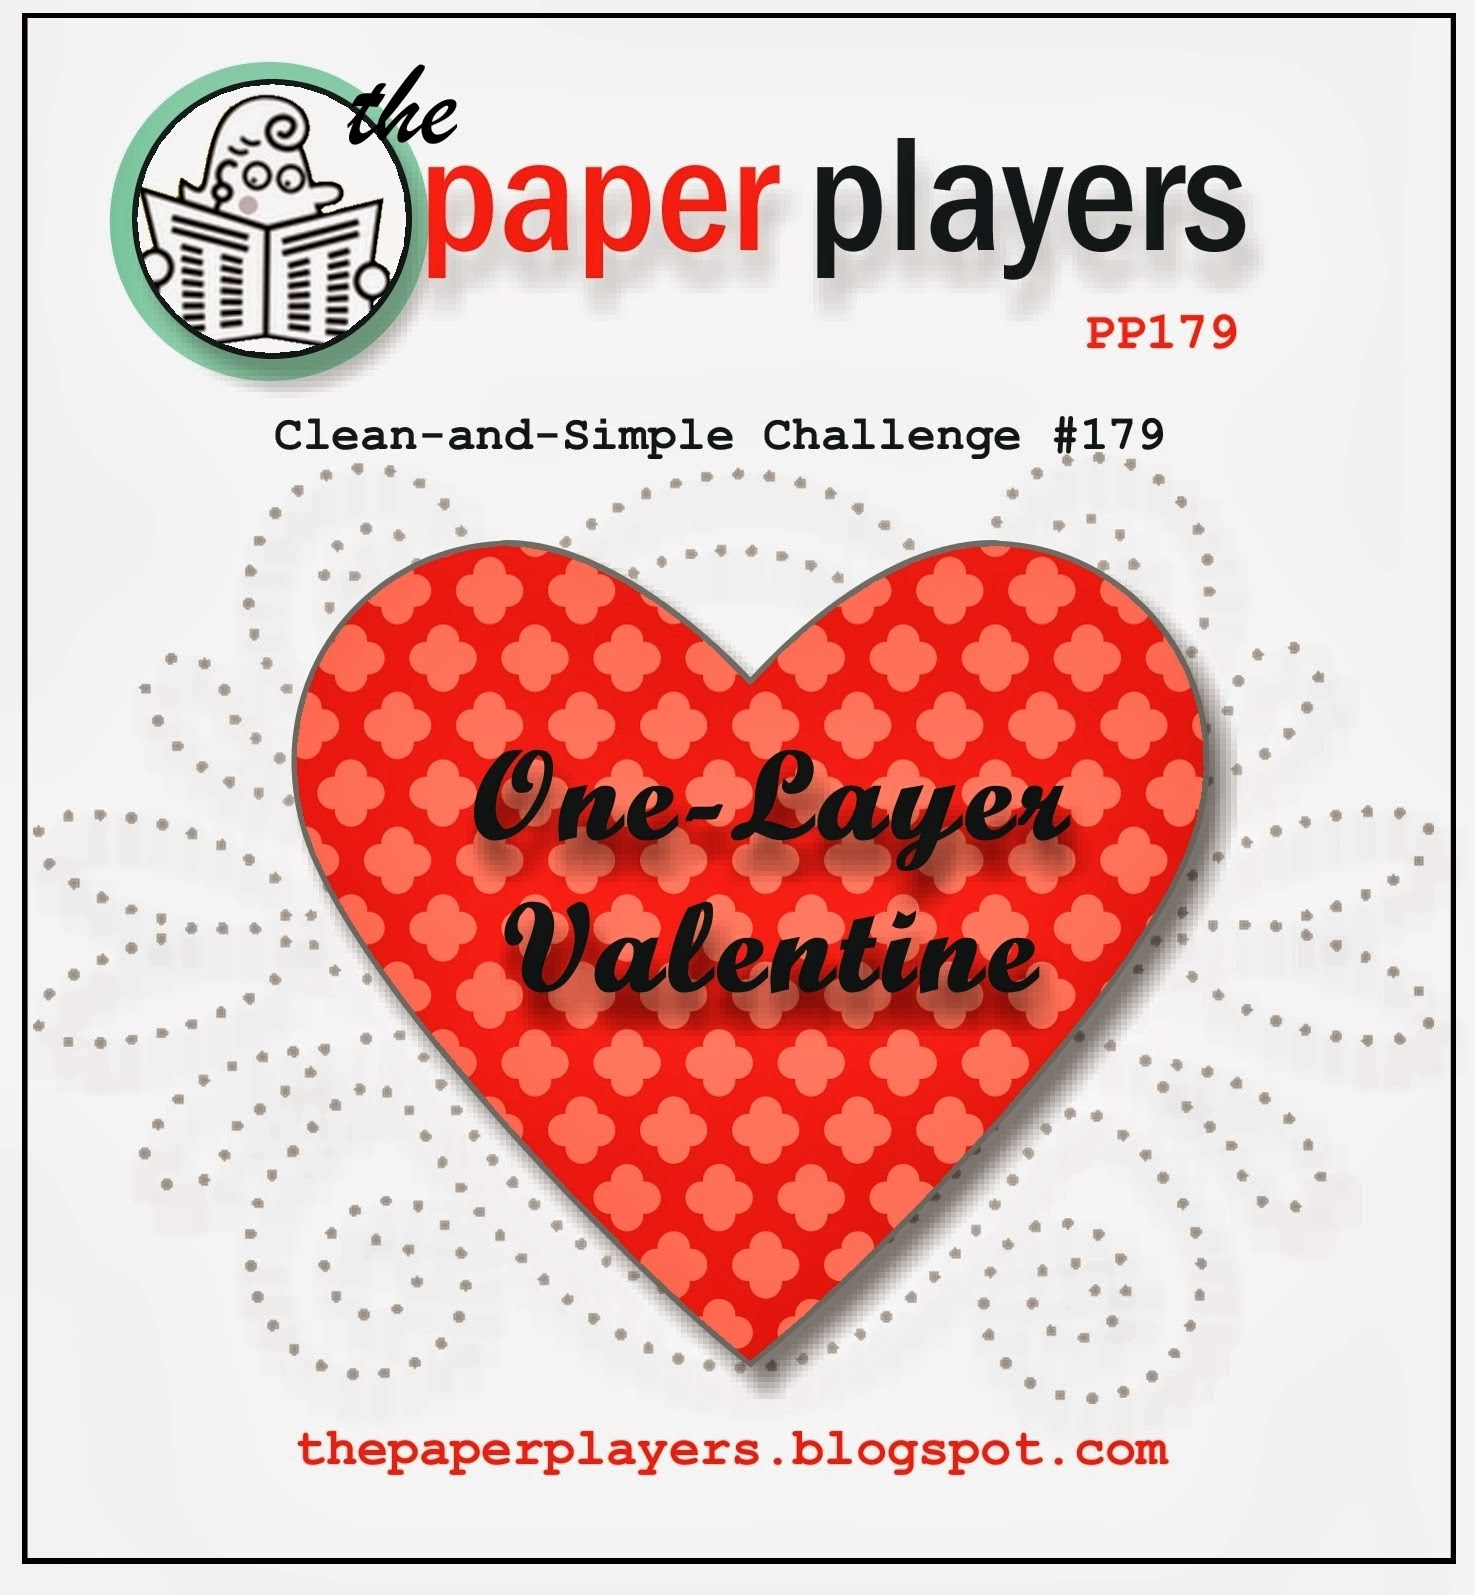 http://thepaperplayers.blogspot.com/2014/01/the-paper-players-179-one-layer.html